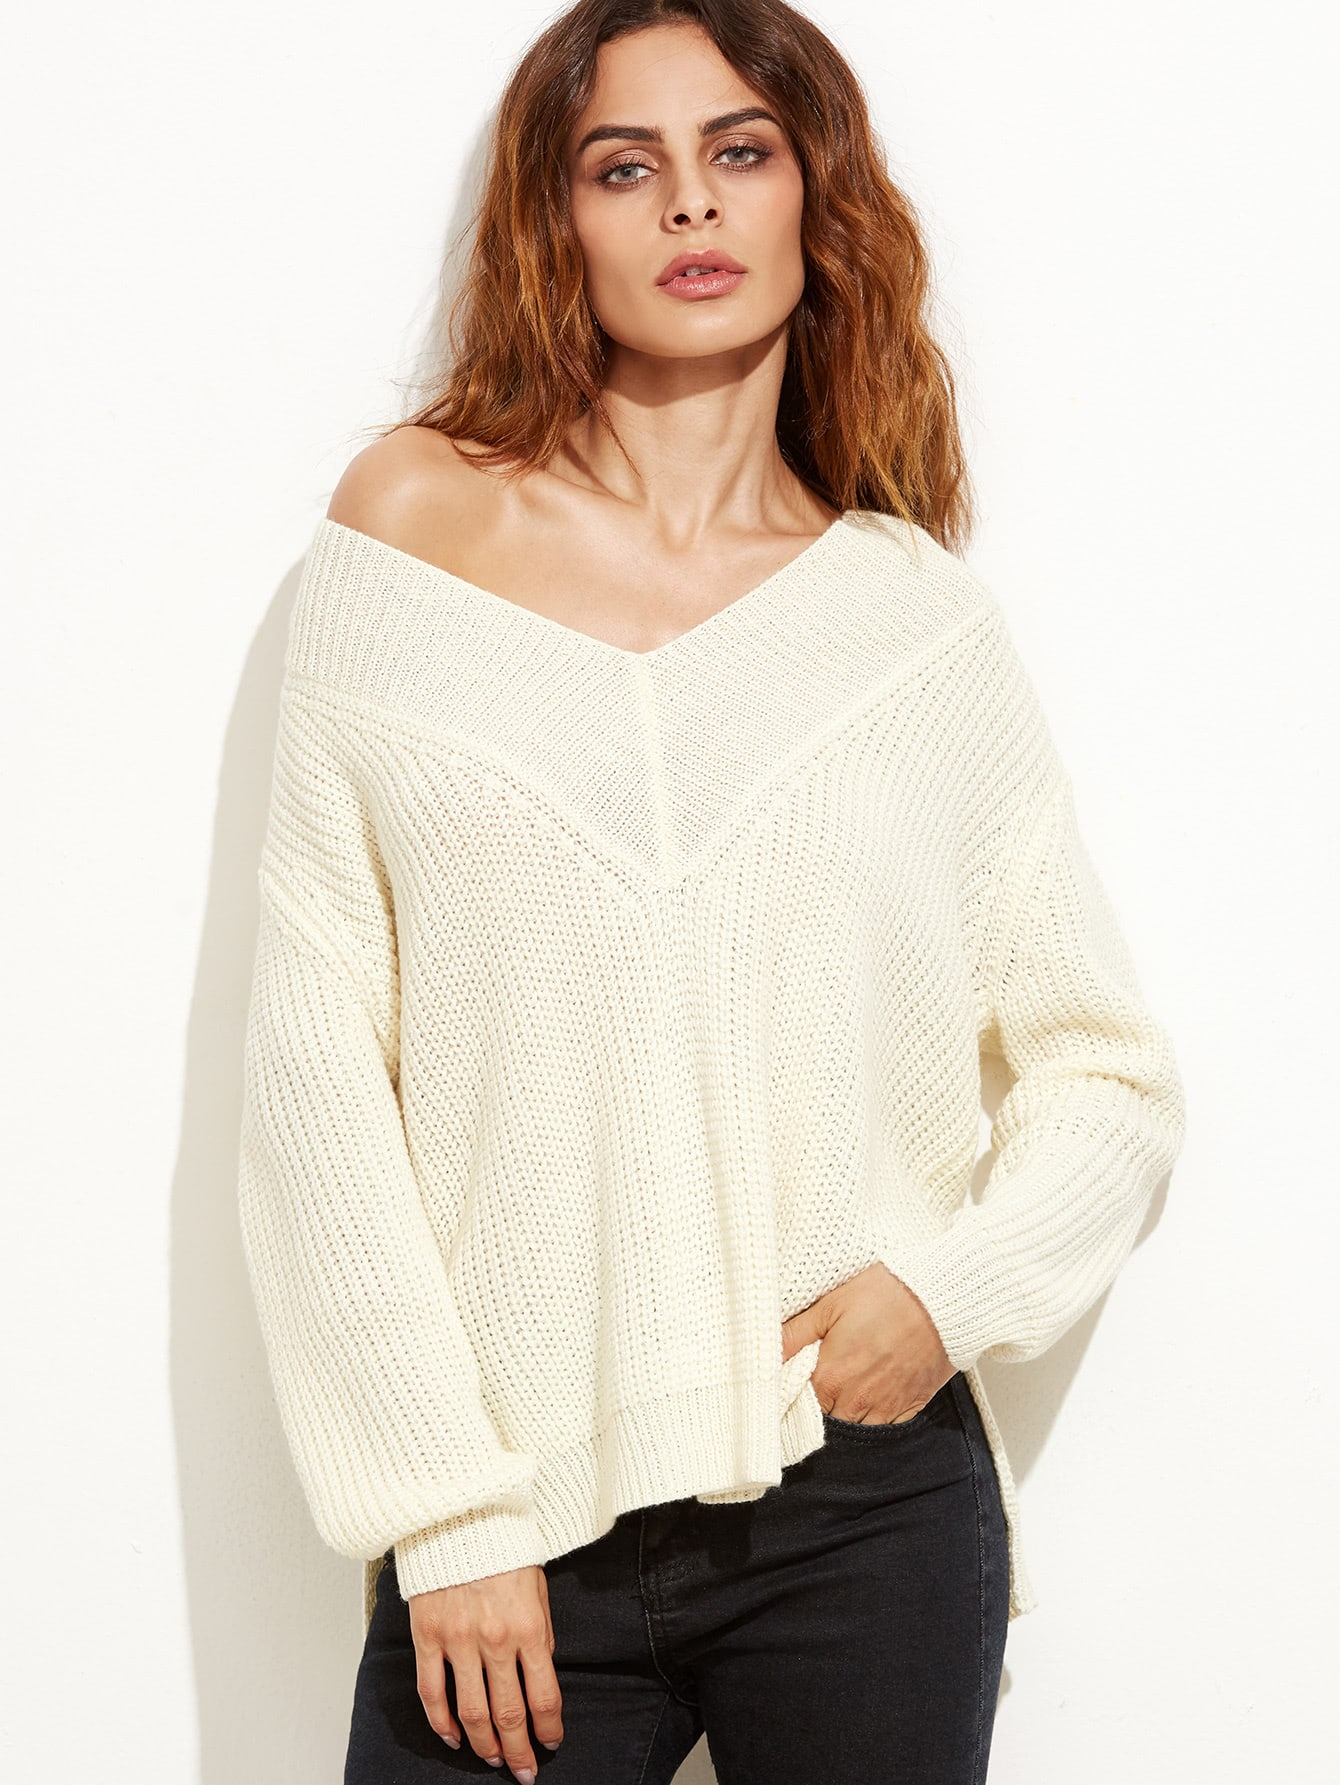 Apricot Ribbed Knit Slit High Low Sweater sweater160928453